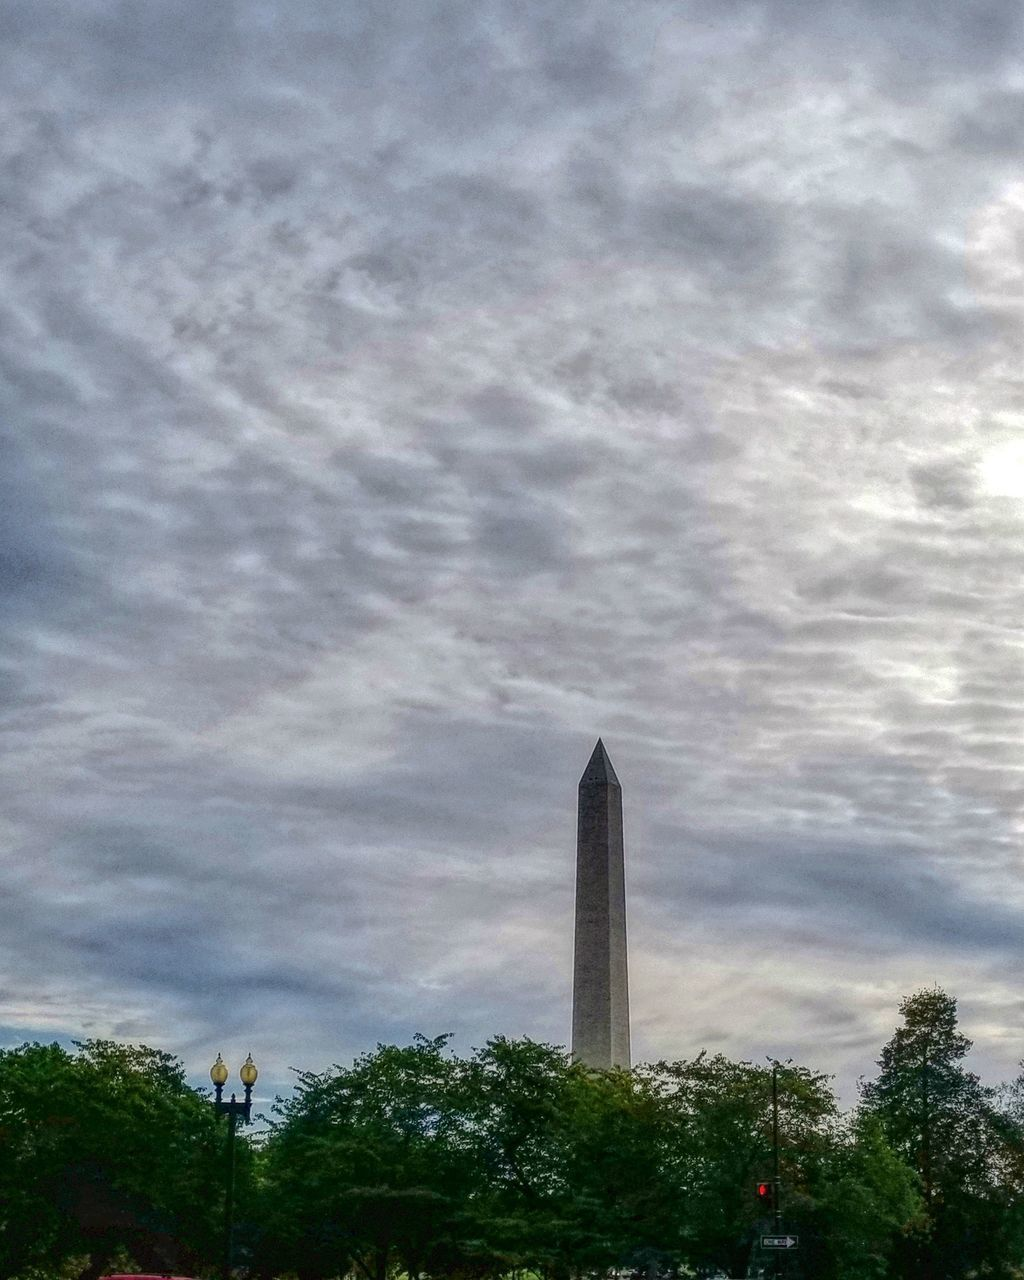 sky, cloud - sky, plant, tree, architecture, built structure, nature, building exterior, low angle view, no people, day, memorial, city, tall - high, outdoors, tower, monument, building, travel destinations, skyscraper, office building exterior, architectural column